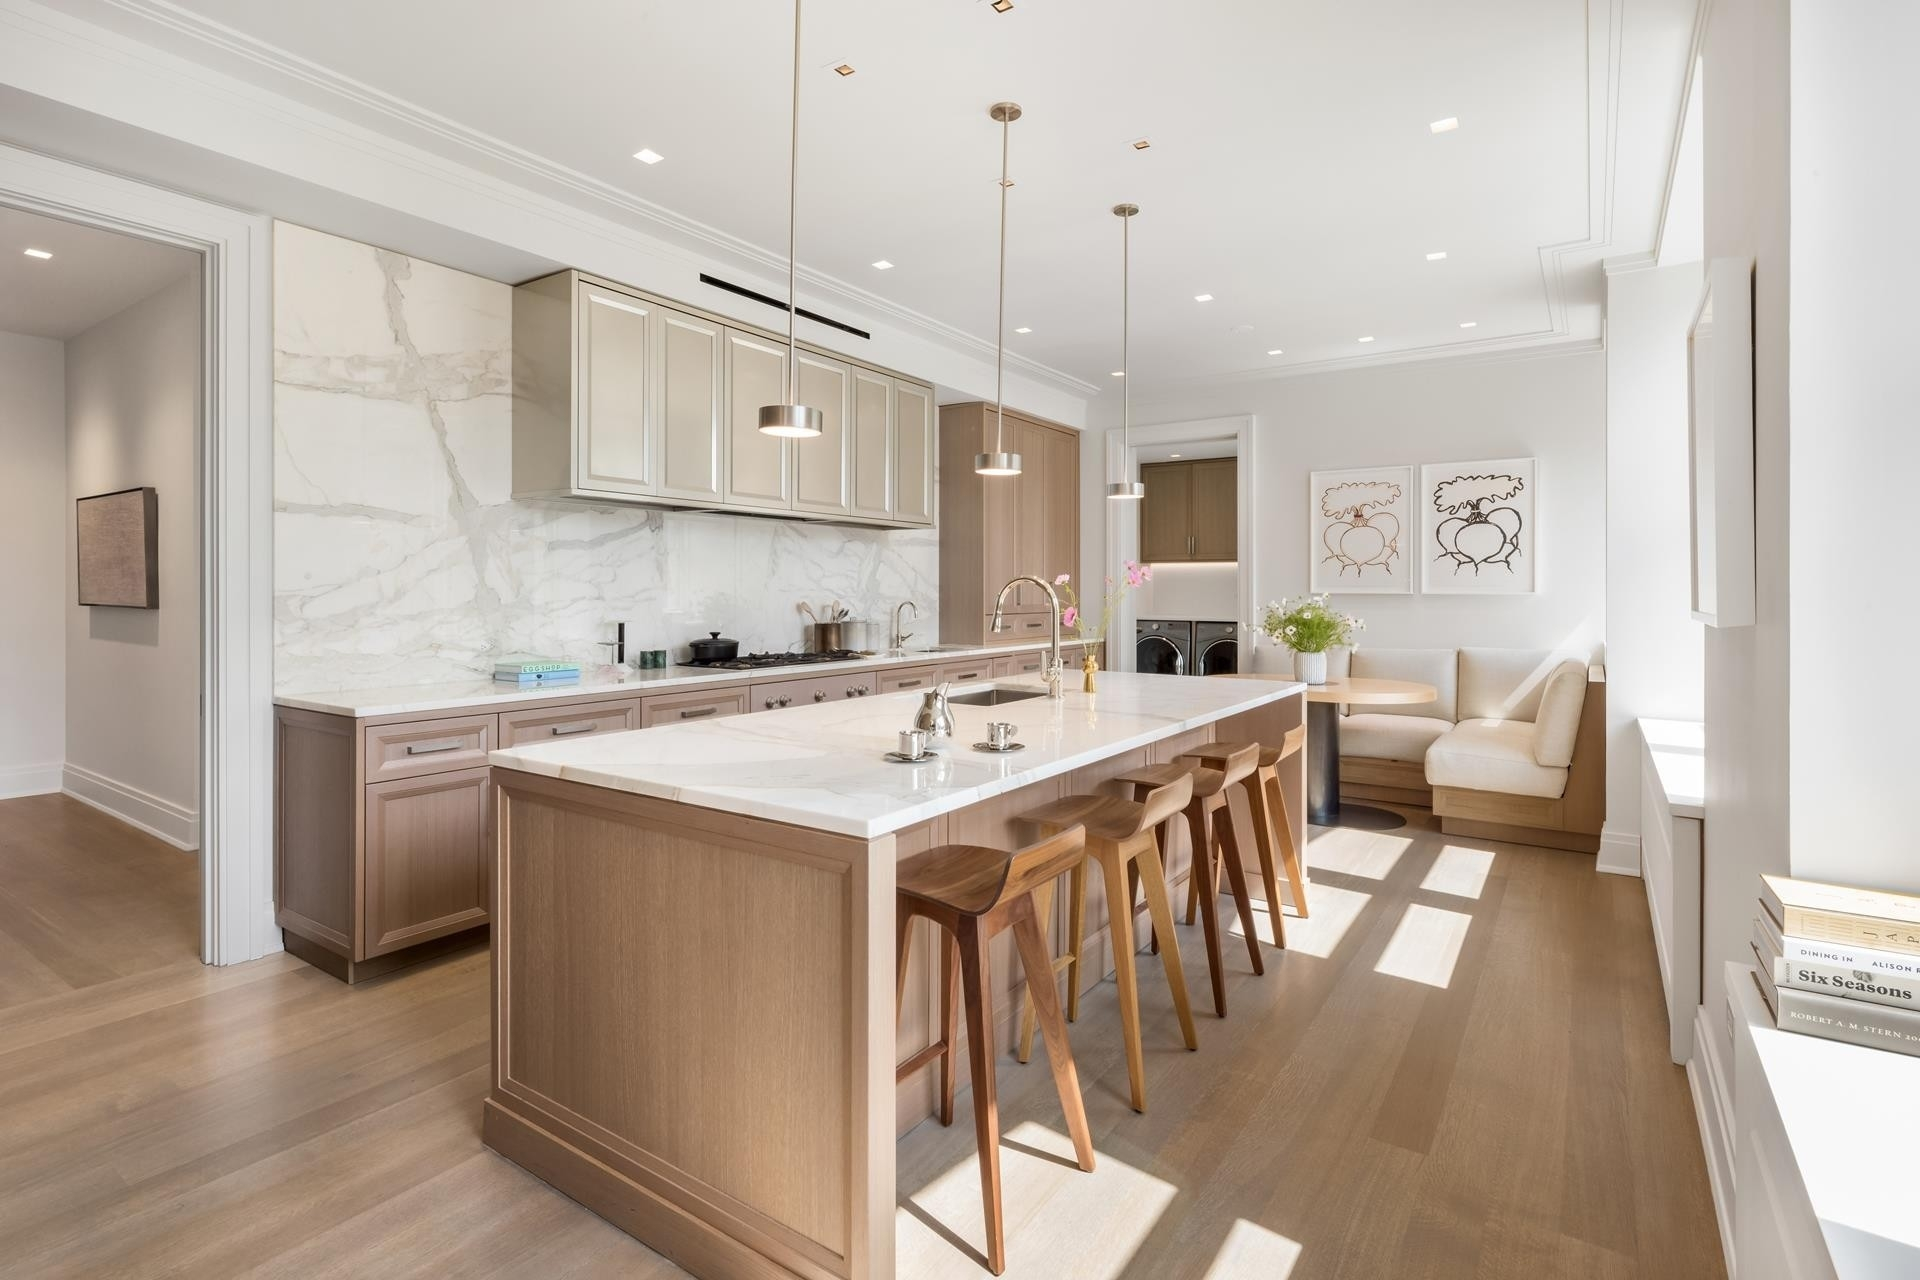 3. Condominiums for Sale at The Belnord, 225 W 86TH ST , 1012 Upper West Side, New York, NY 10024